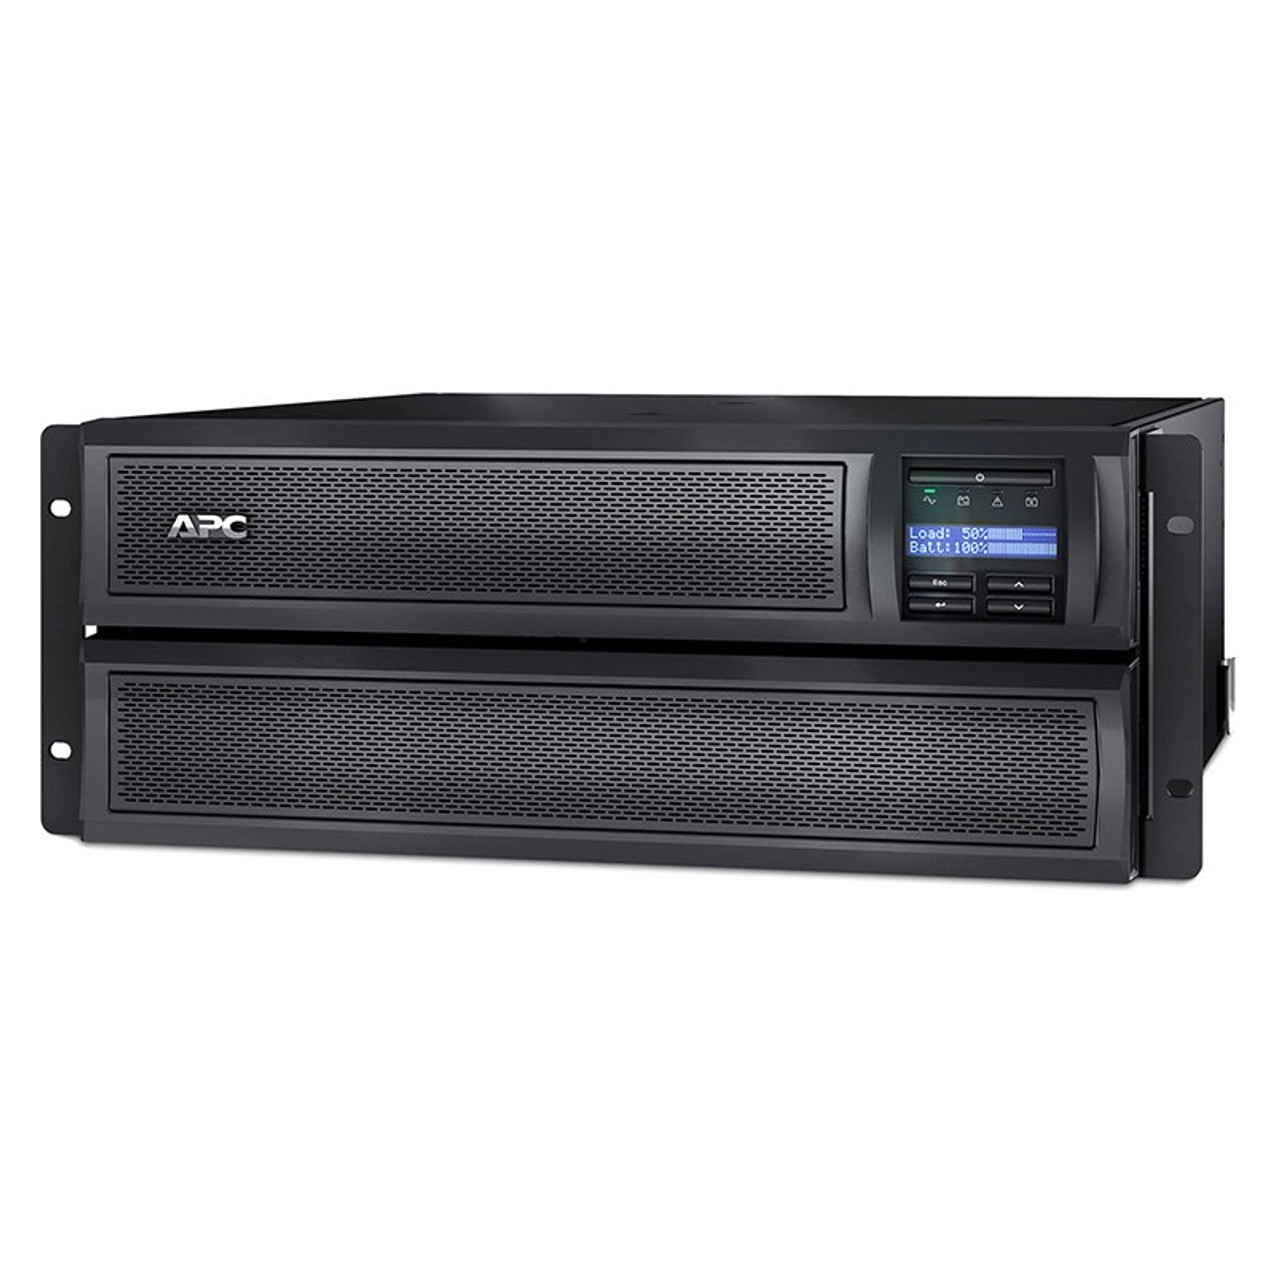 Image for APC SMX2200HV Smart-UPS 2200VA/1980W Sinewave Line Interactive Rack/Tower UPS CX Computer Superstore